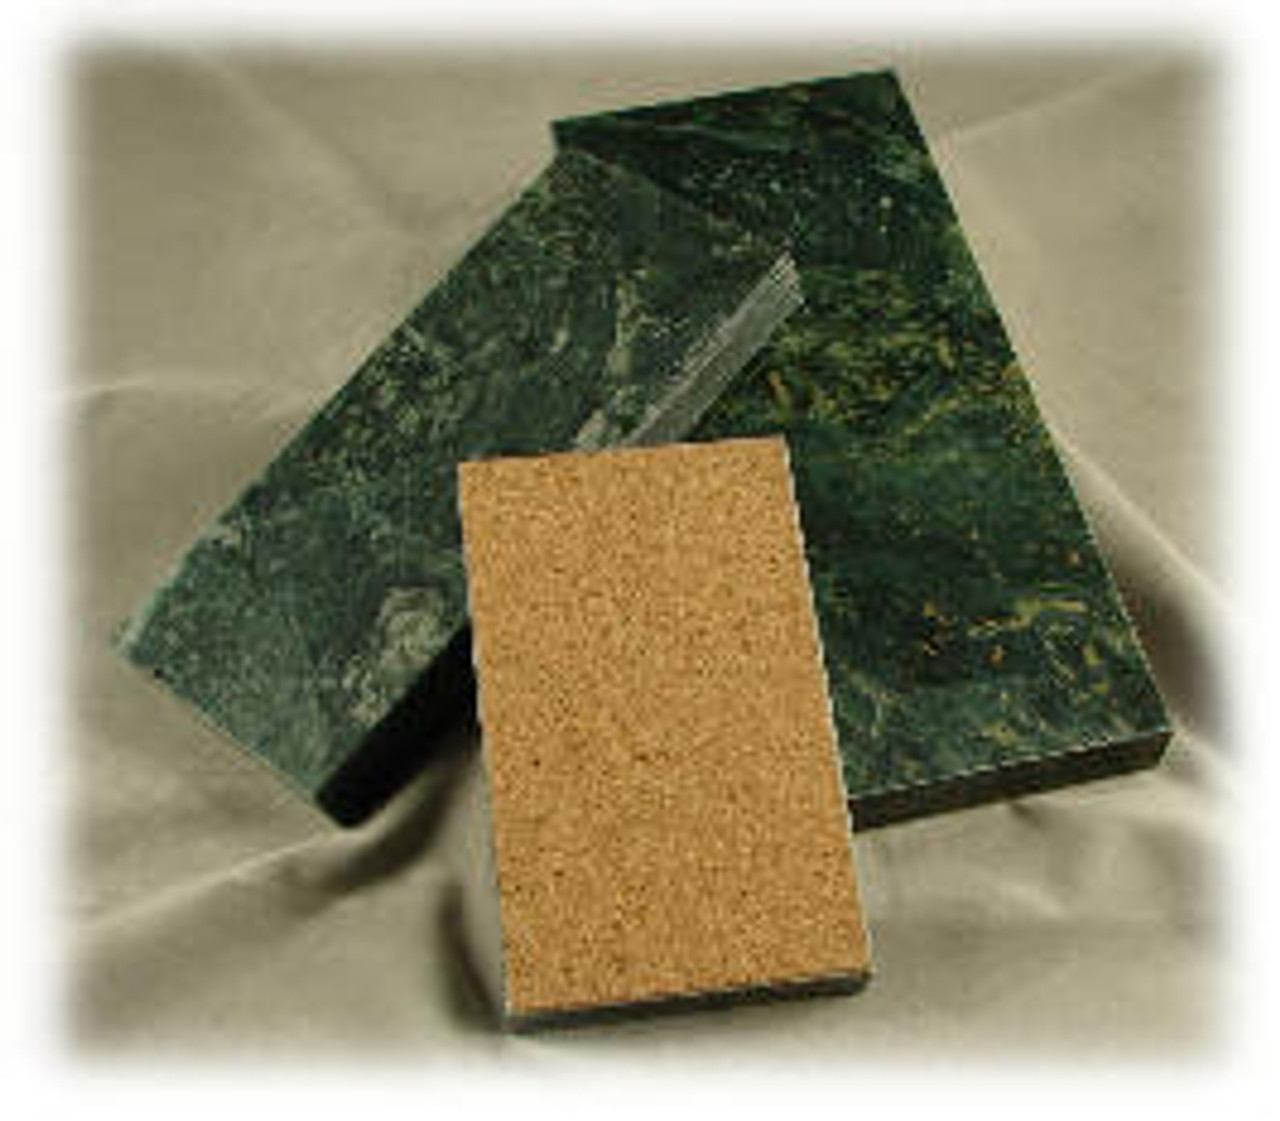 "M-DG-4x9PB: Dark Green Marble,   4"" x 9"" x 3/4"" Pen Base or Paper Weight, 5-Surface Polished with a Cork Pad Bottom"